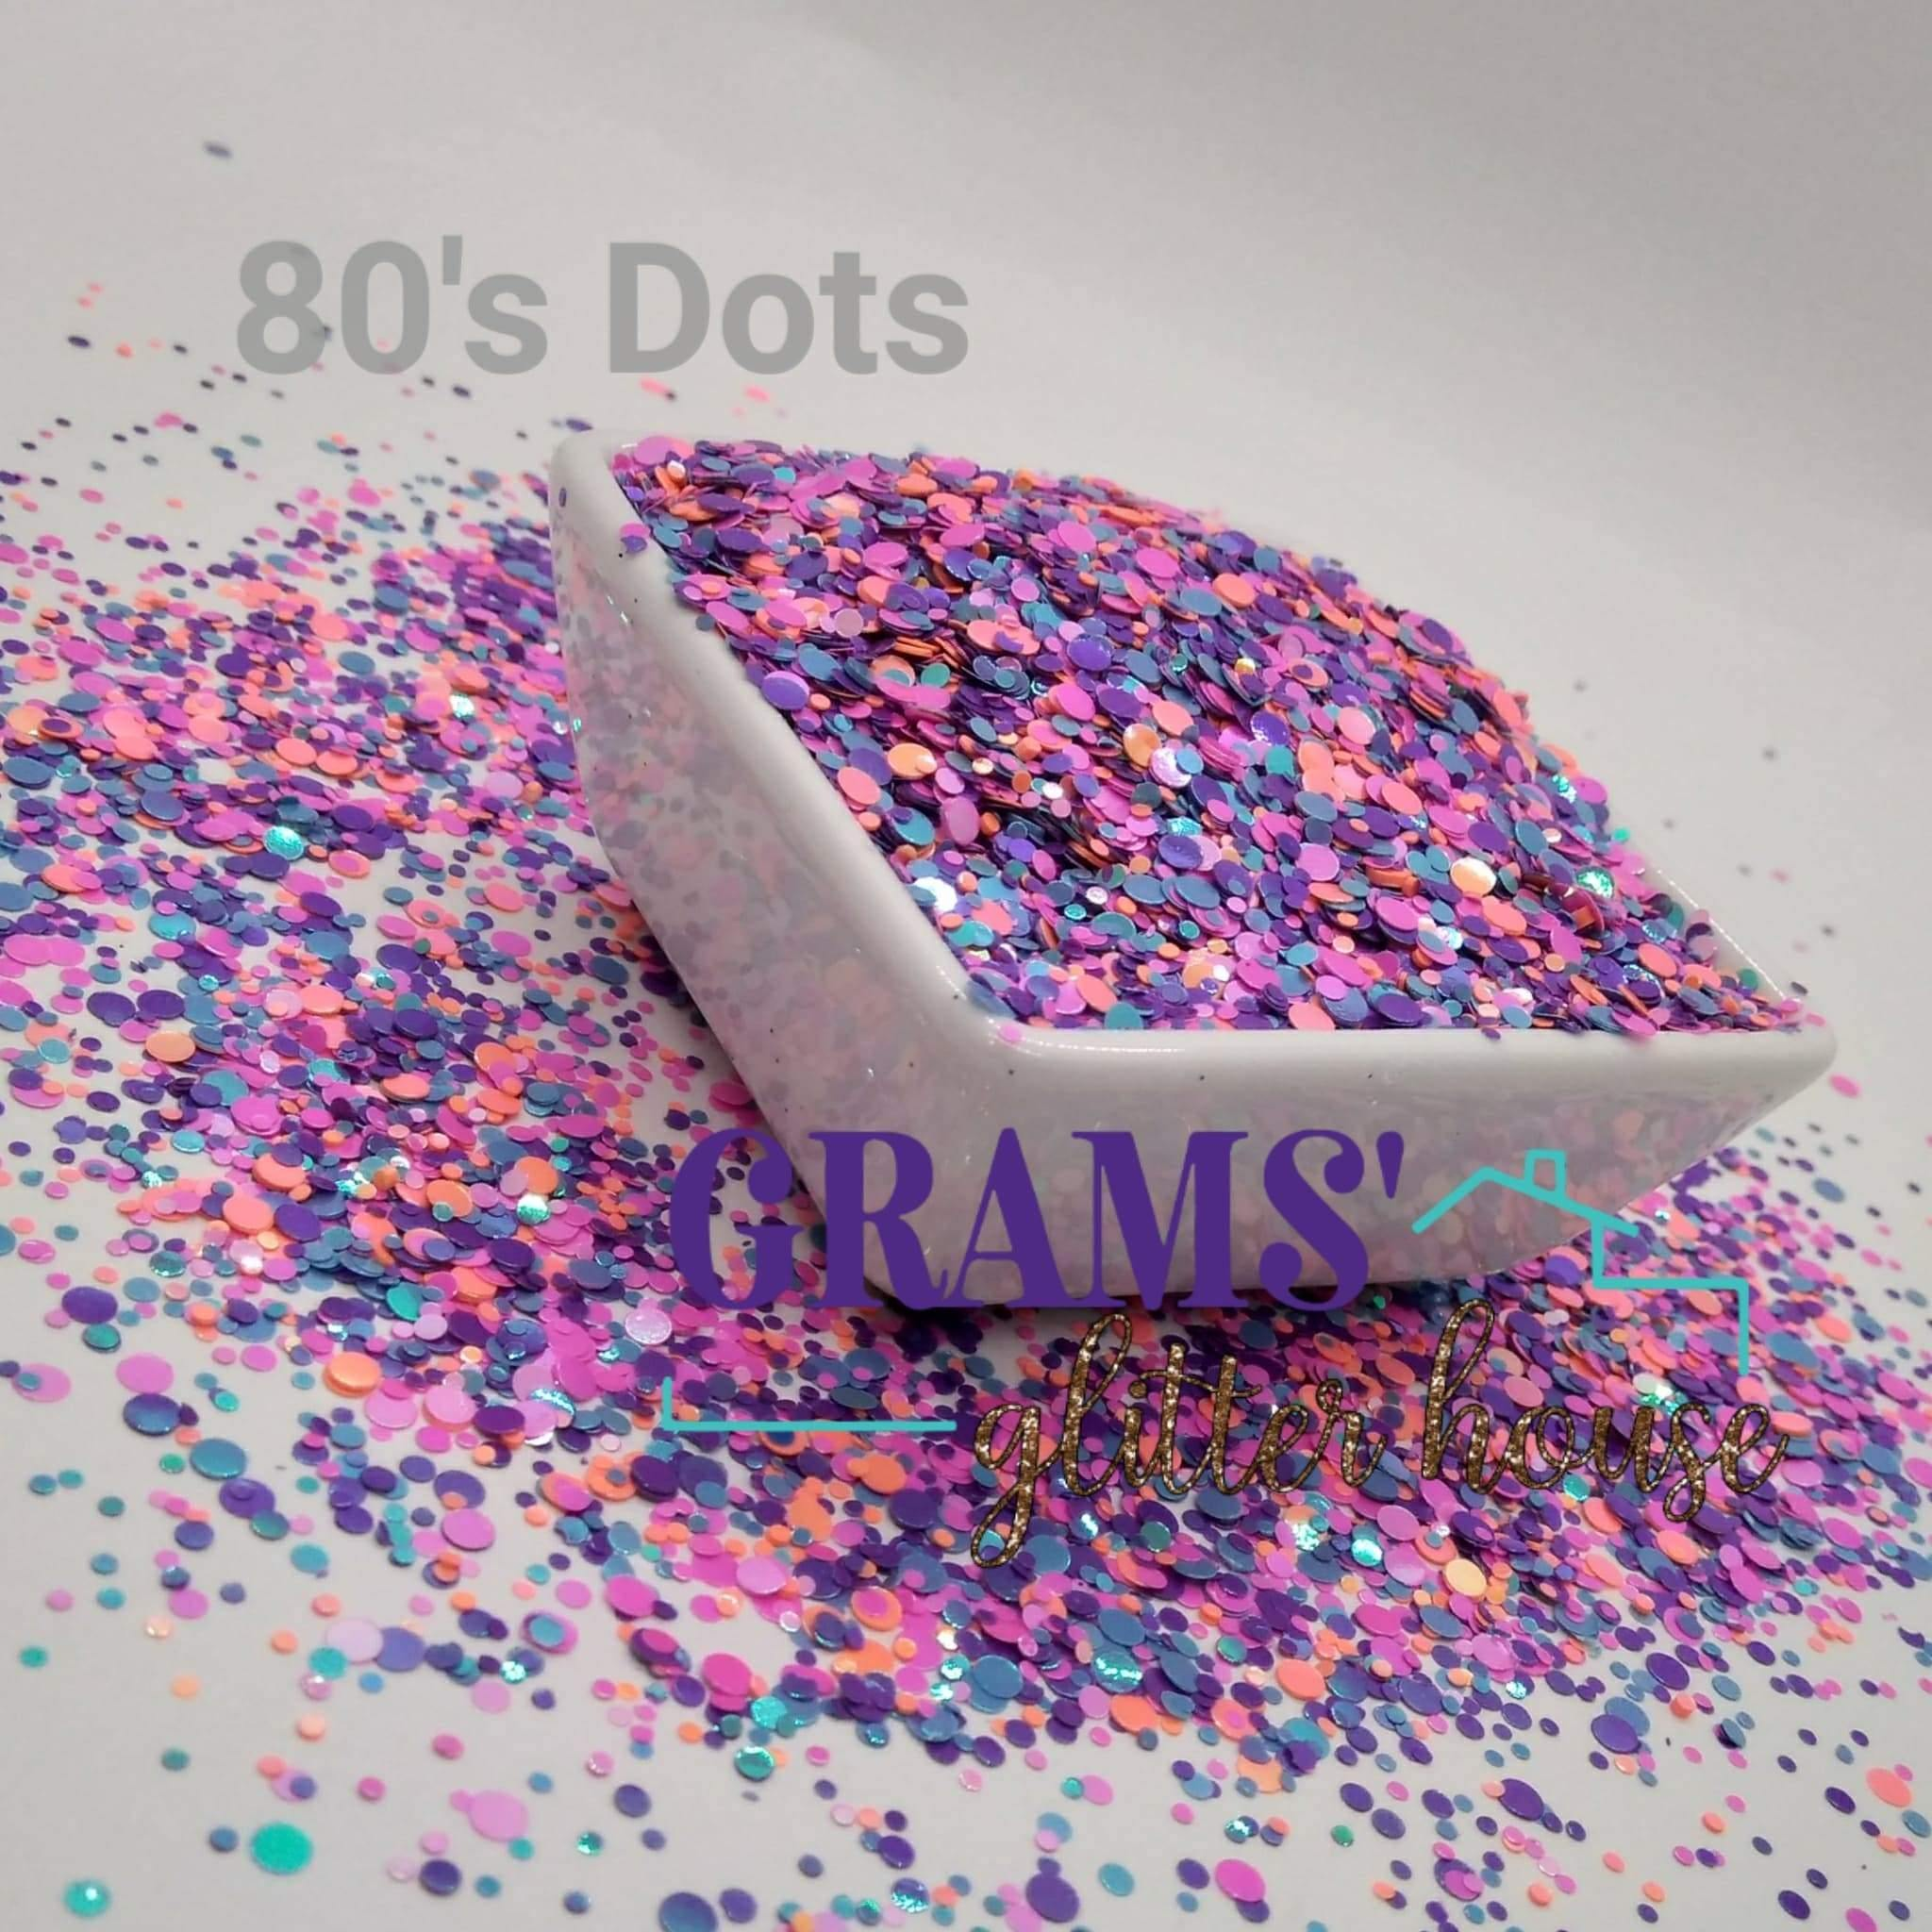 80's Dots - Grams' Glitter House